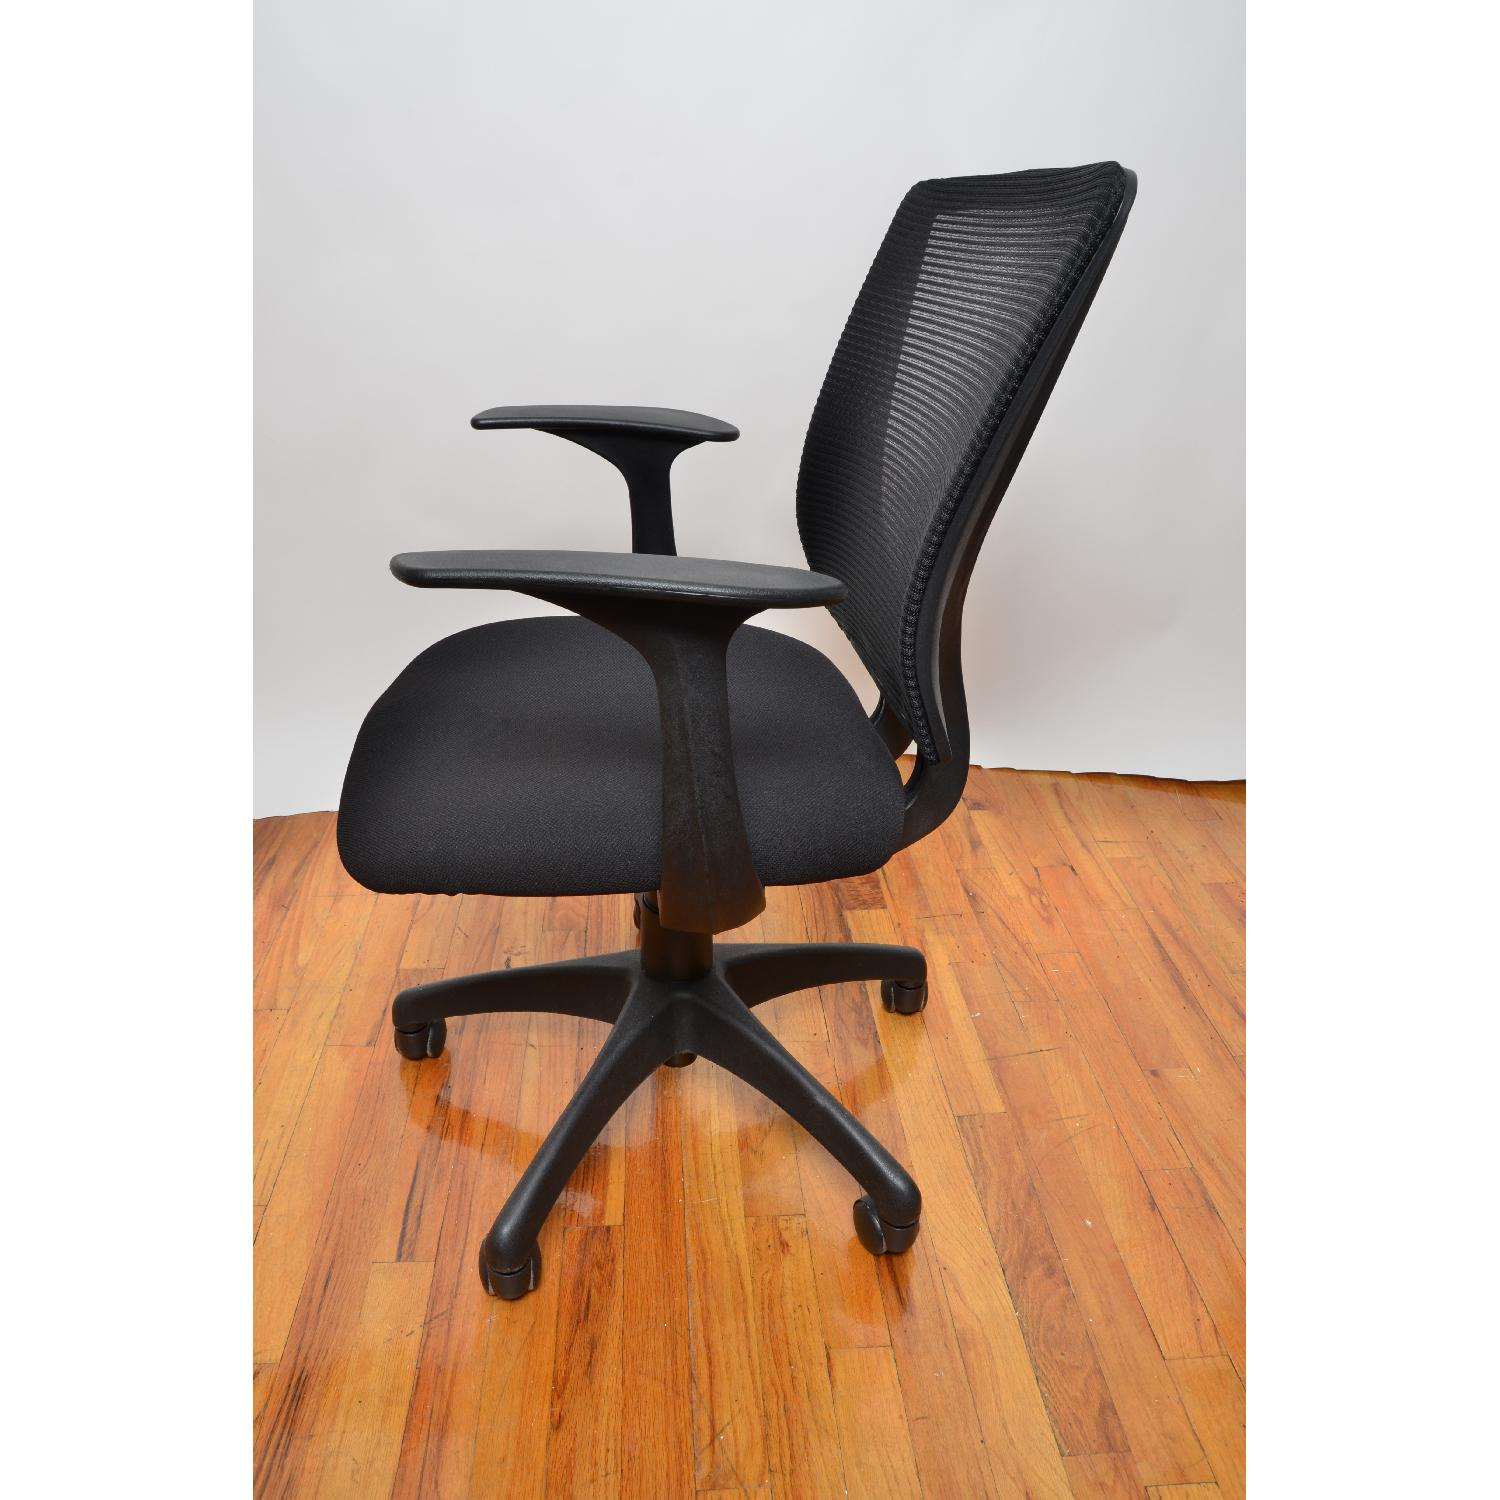 Staples Black Rolling fice Chair AptDeco